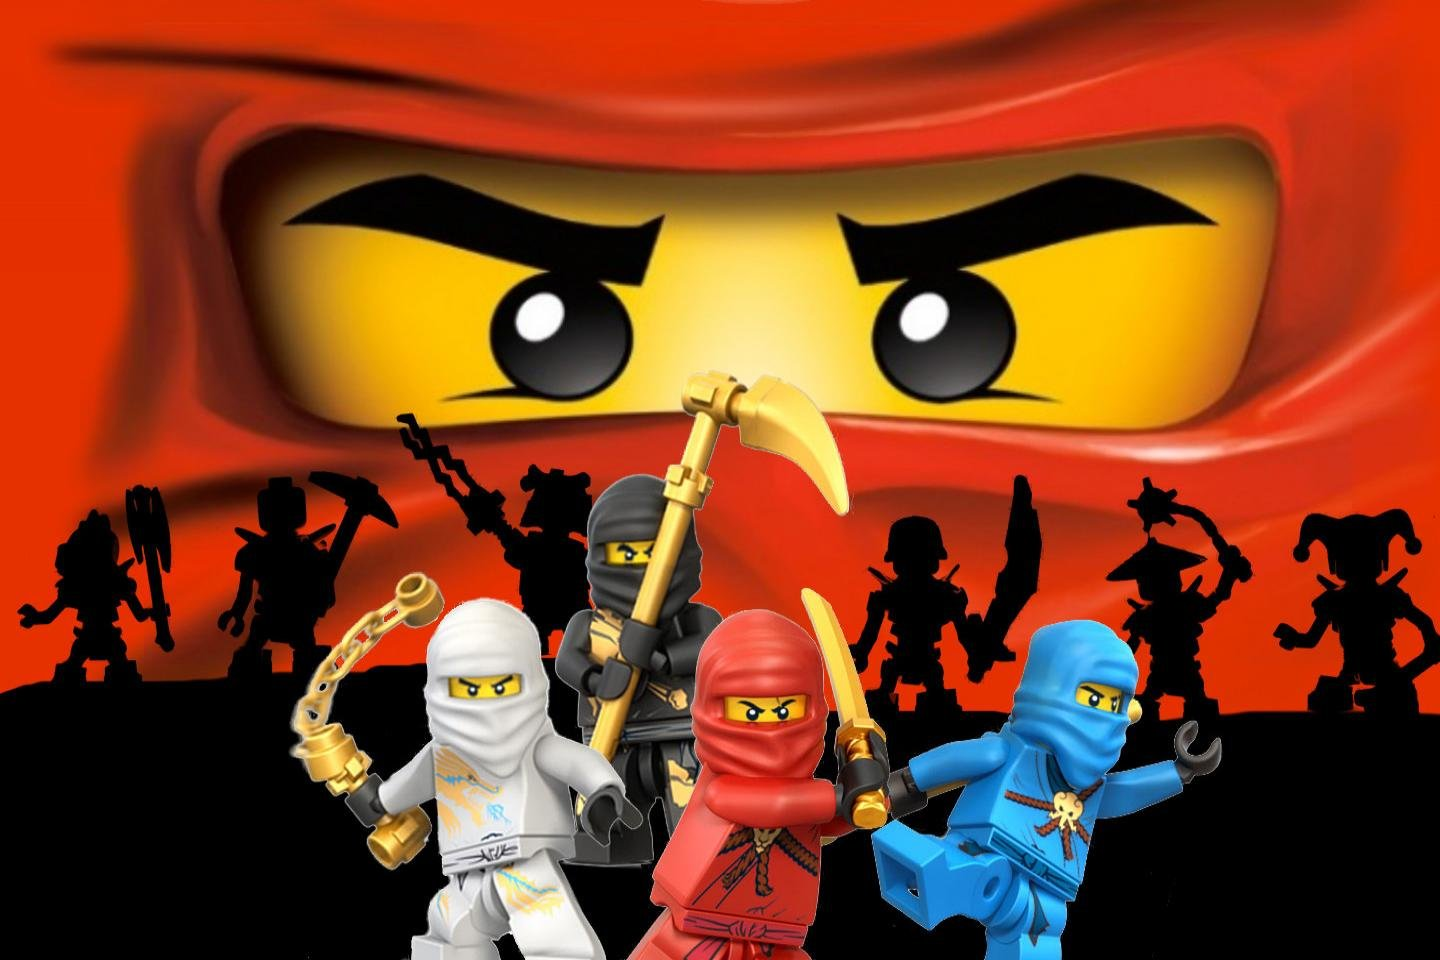 Lego Ninjago Masters Of Spinjitzu Wallpapers Hd For Desktop Images, Photos, Reviews